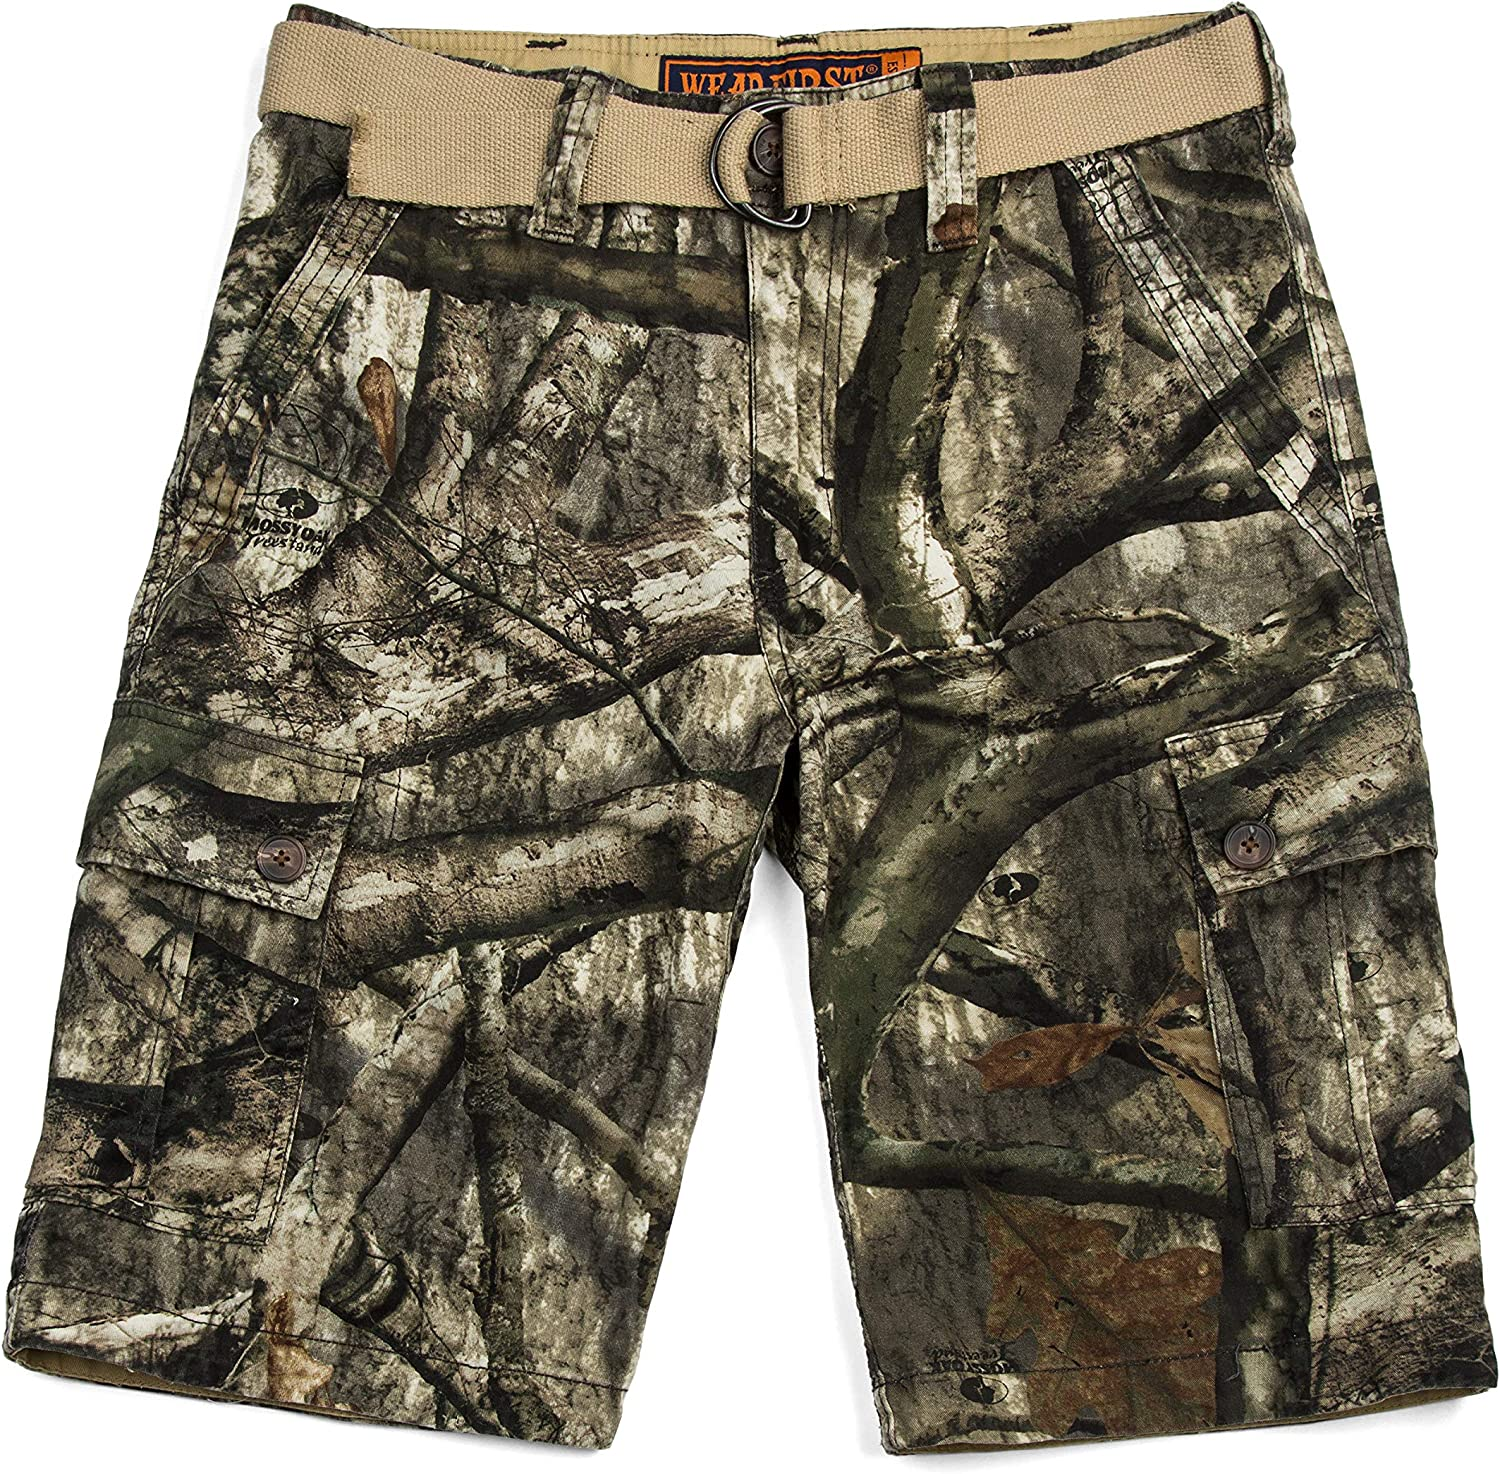 WEAR FIRST. THEN TELL THE DIFFERENCE Men's Mossy Oak Treestand Camo Belted Cargo Short with 6 Pockets, Size 34